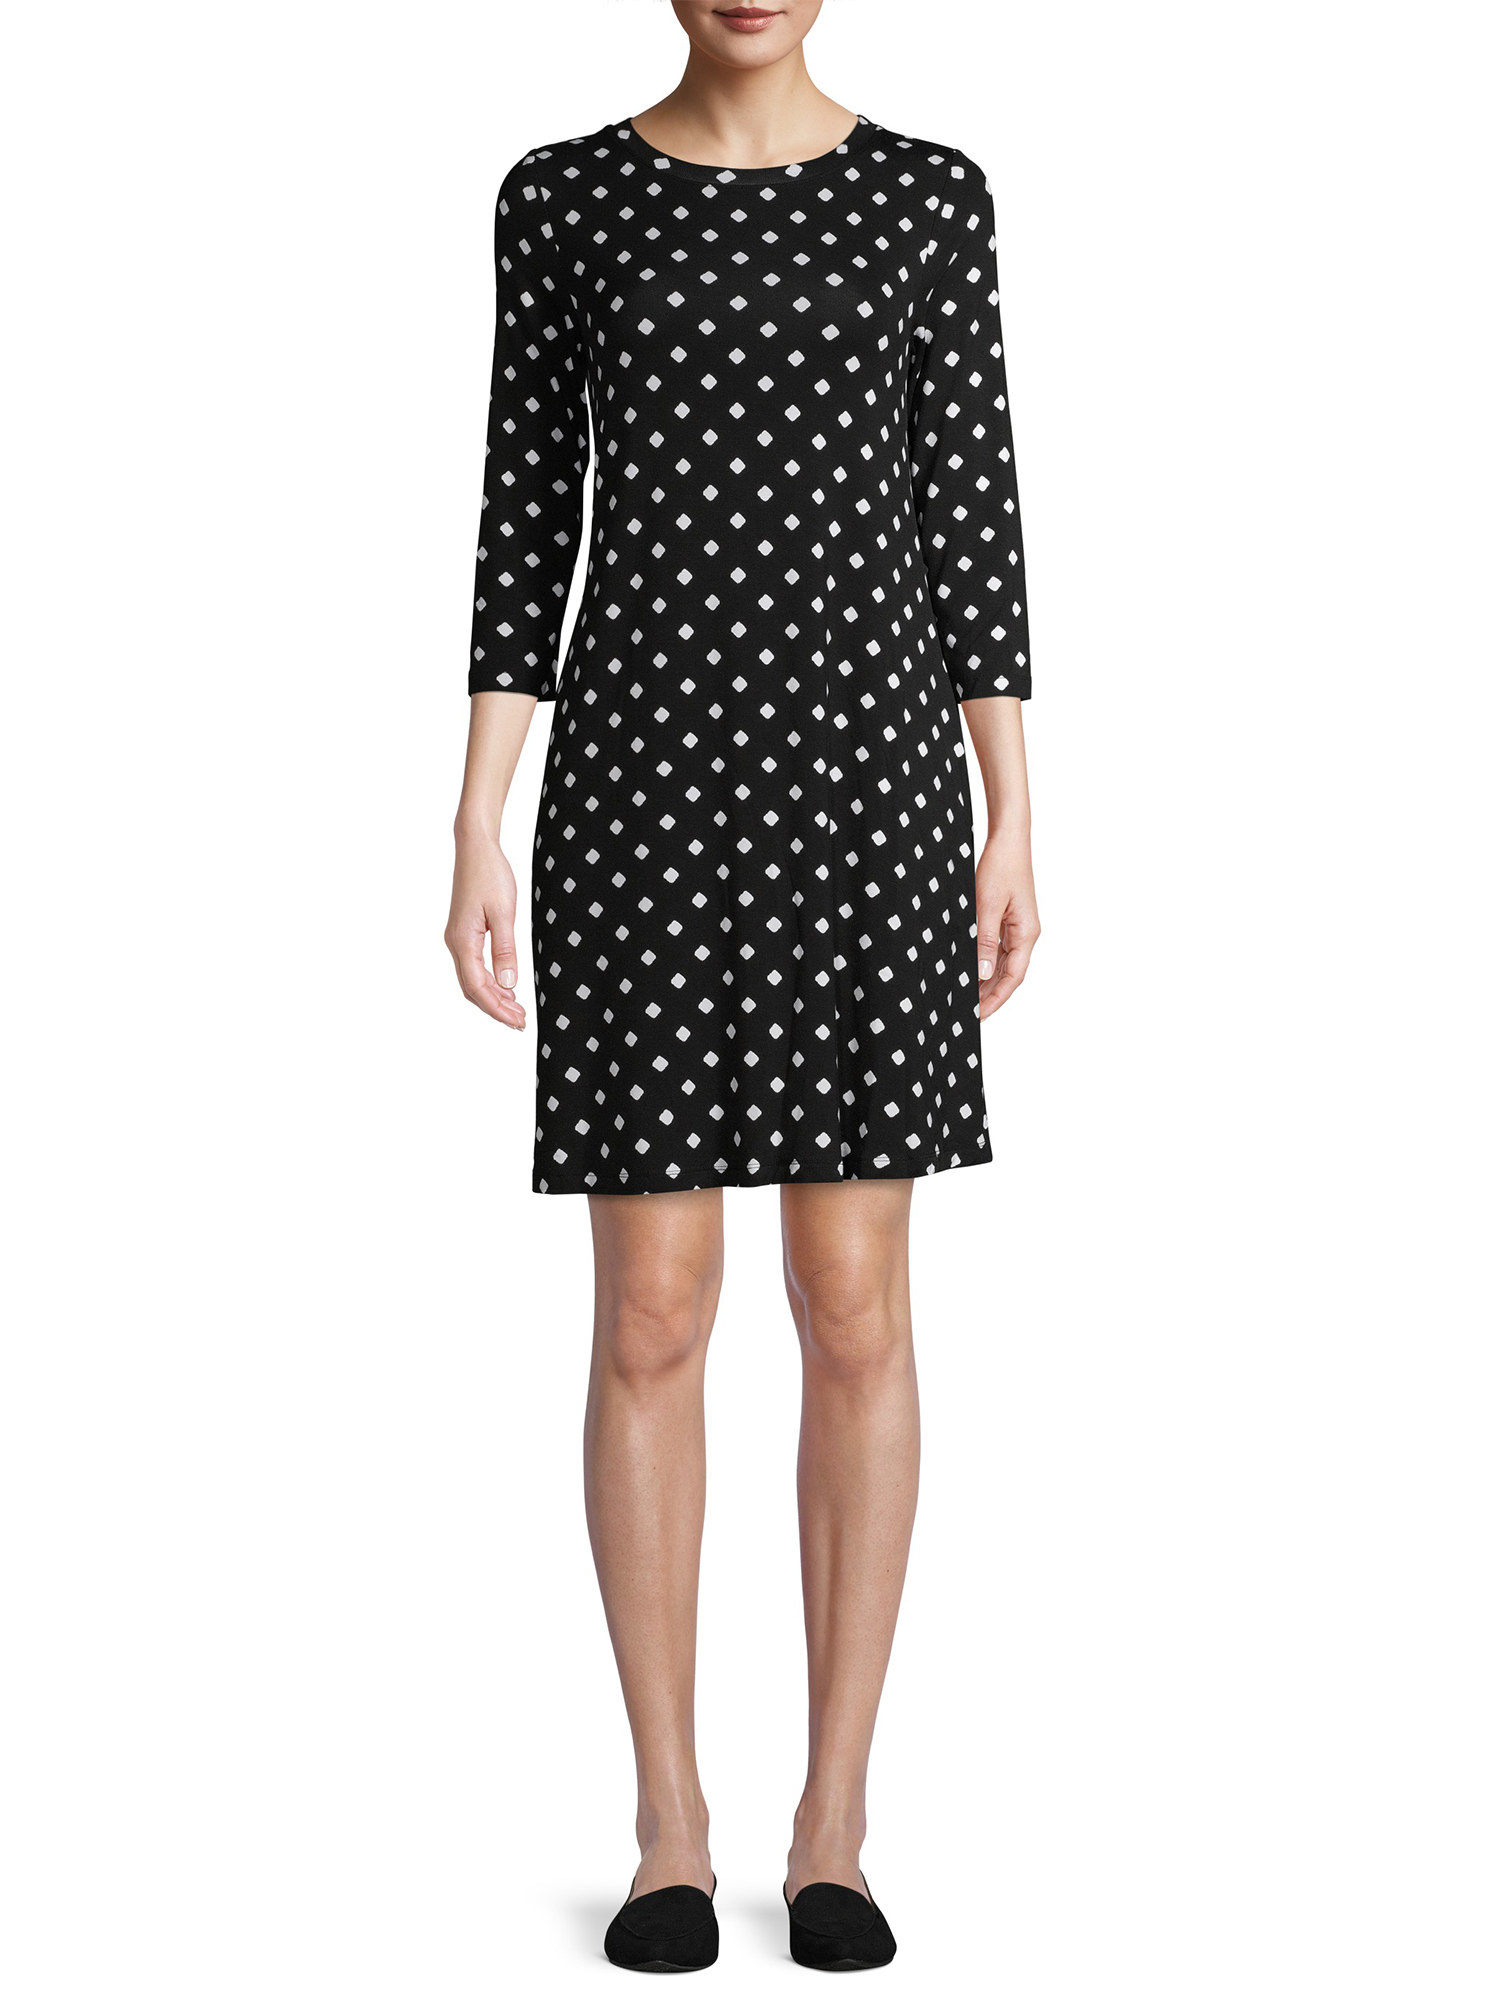 Model wearing black dress with white dots